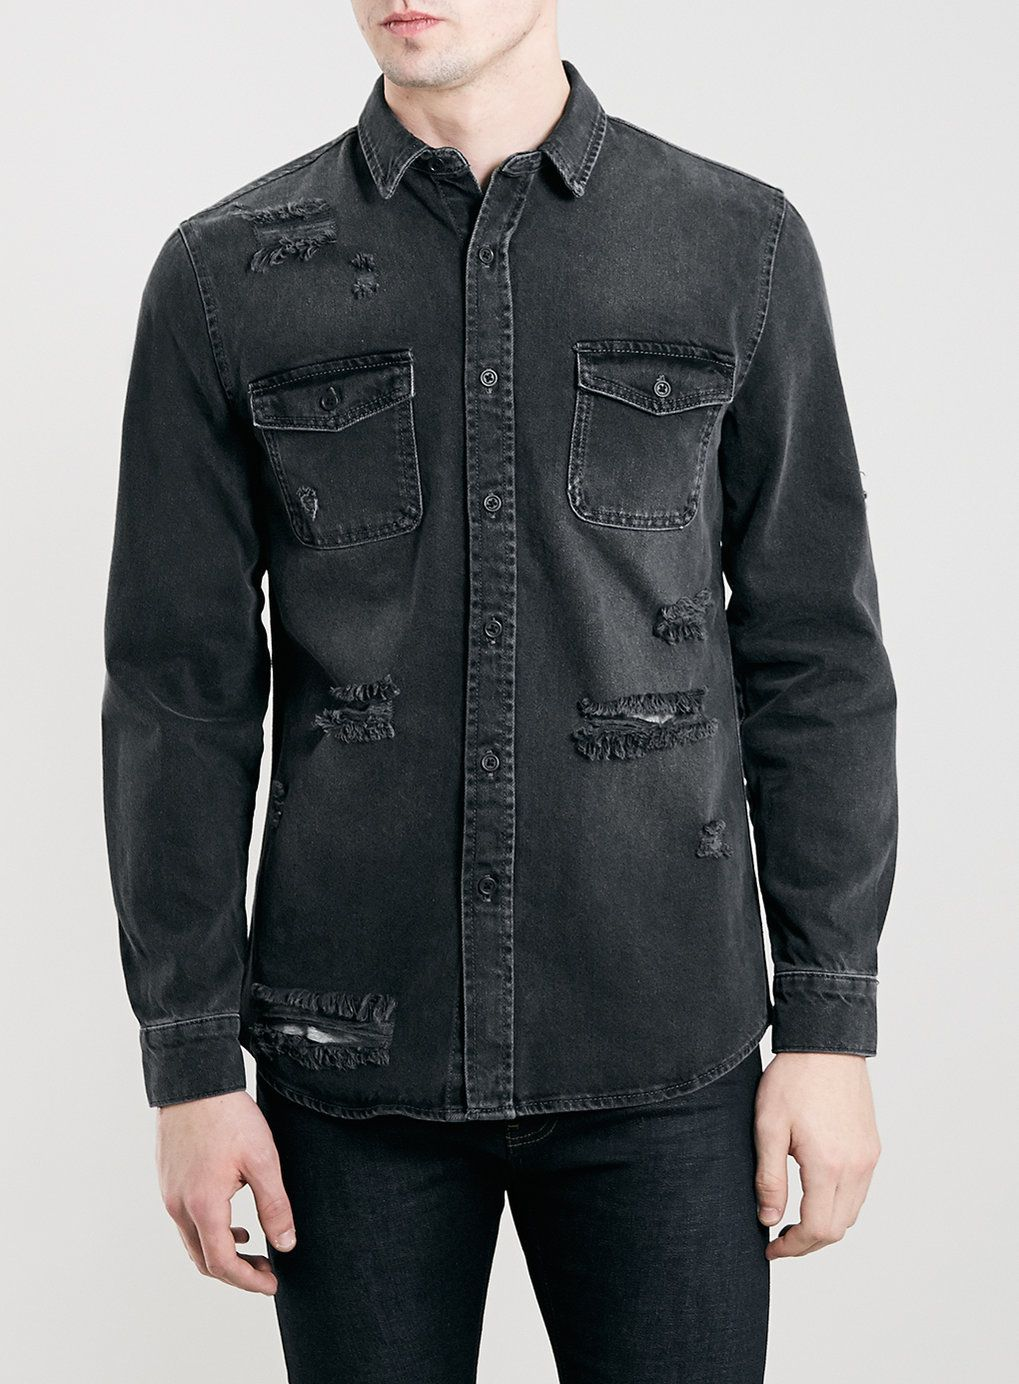 TOPMAN - Black Ripped Denim Long Sleeve Shirt | Wish List ...